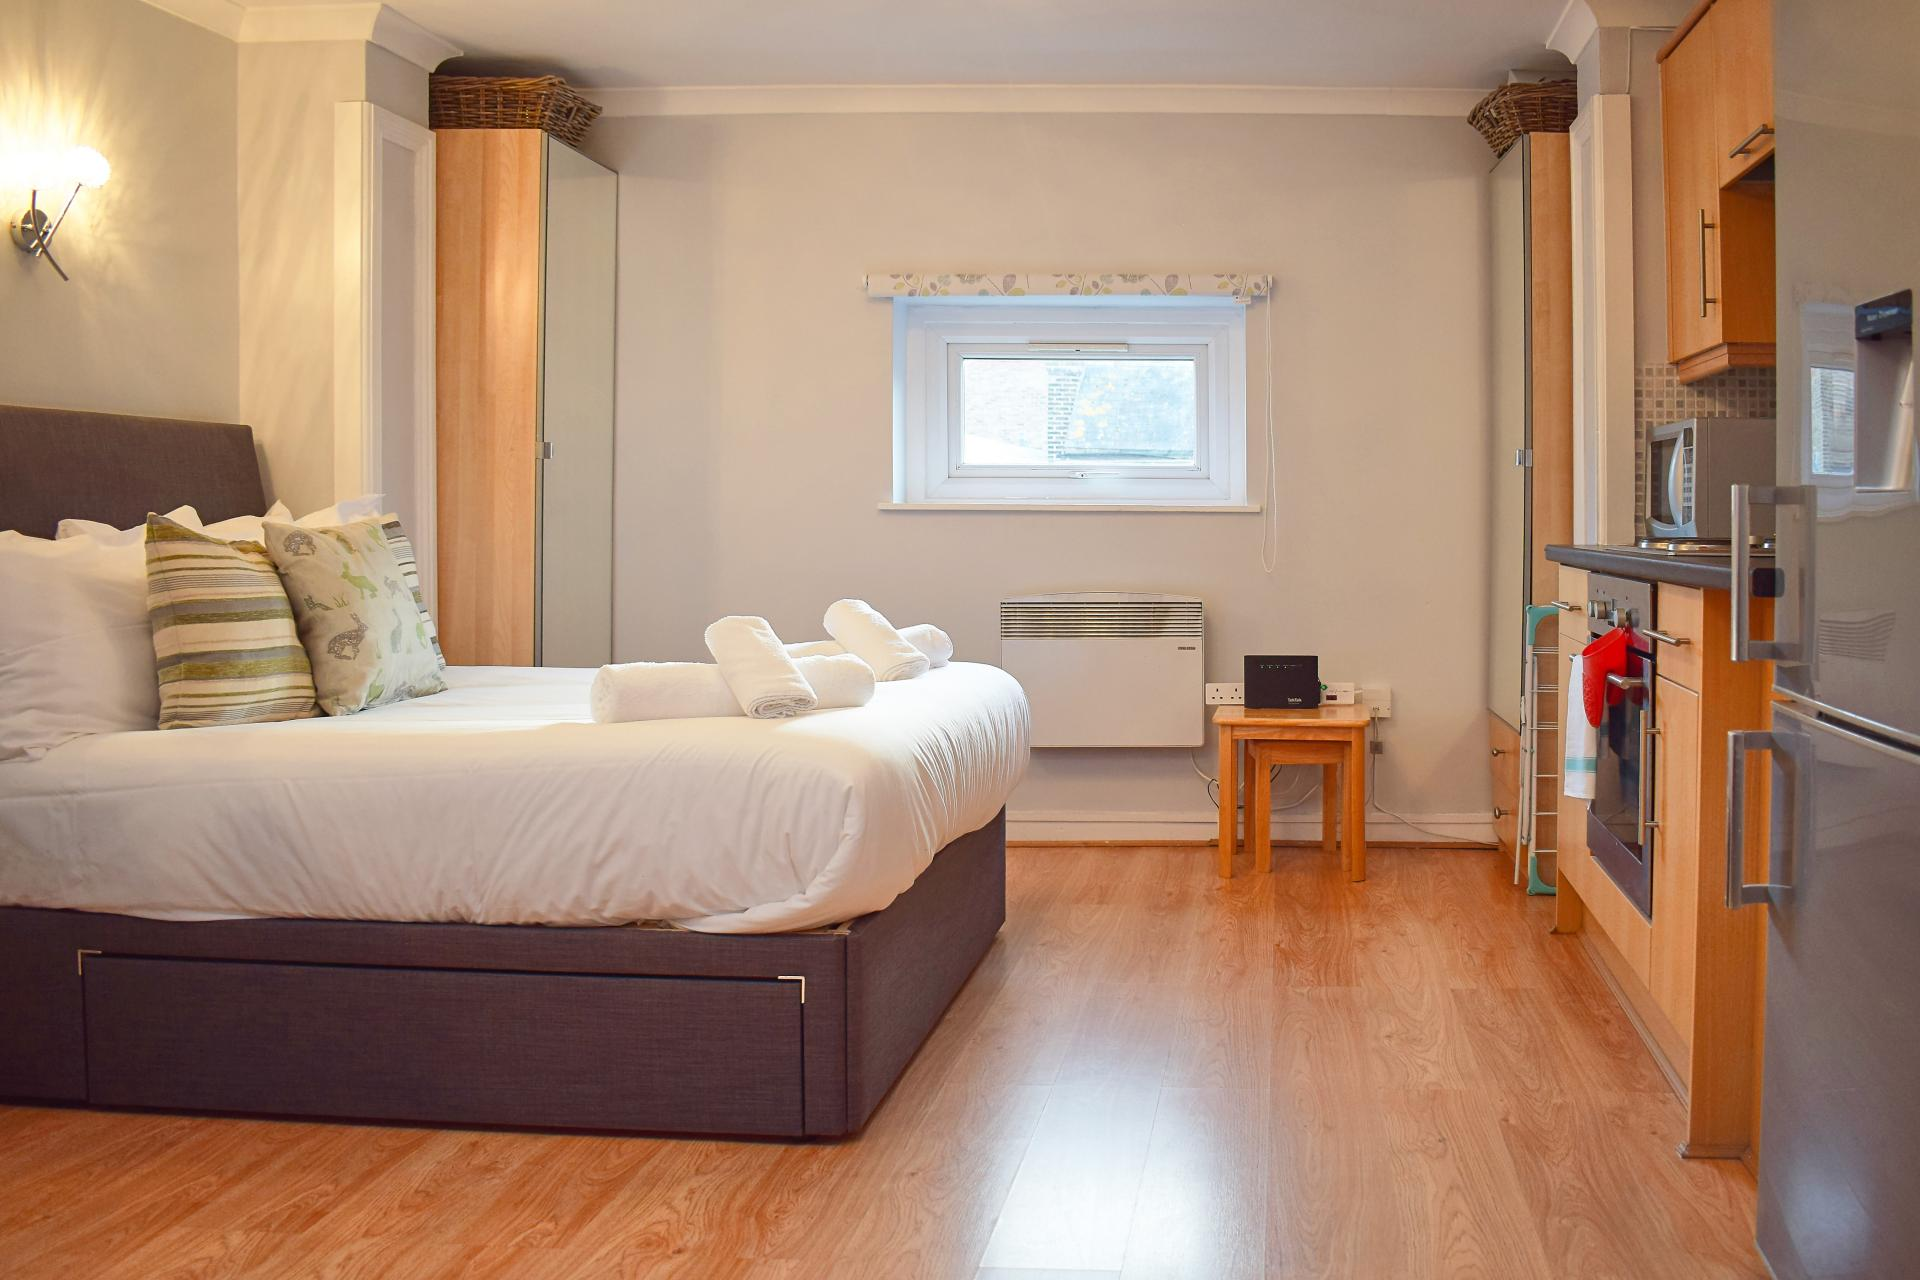 Double bed at Market Street Studio Apartment